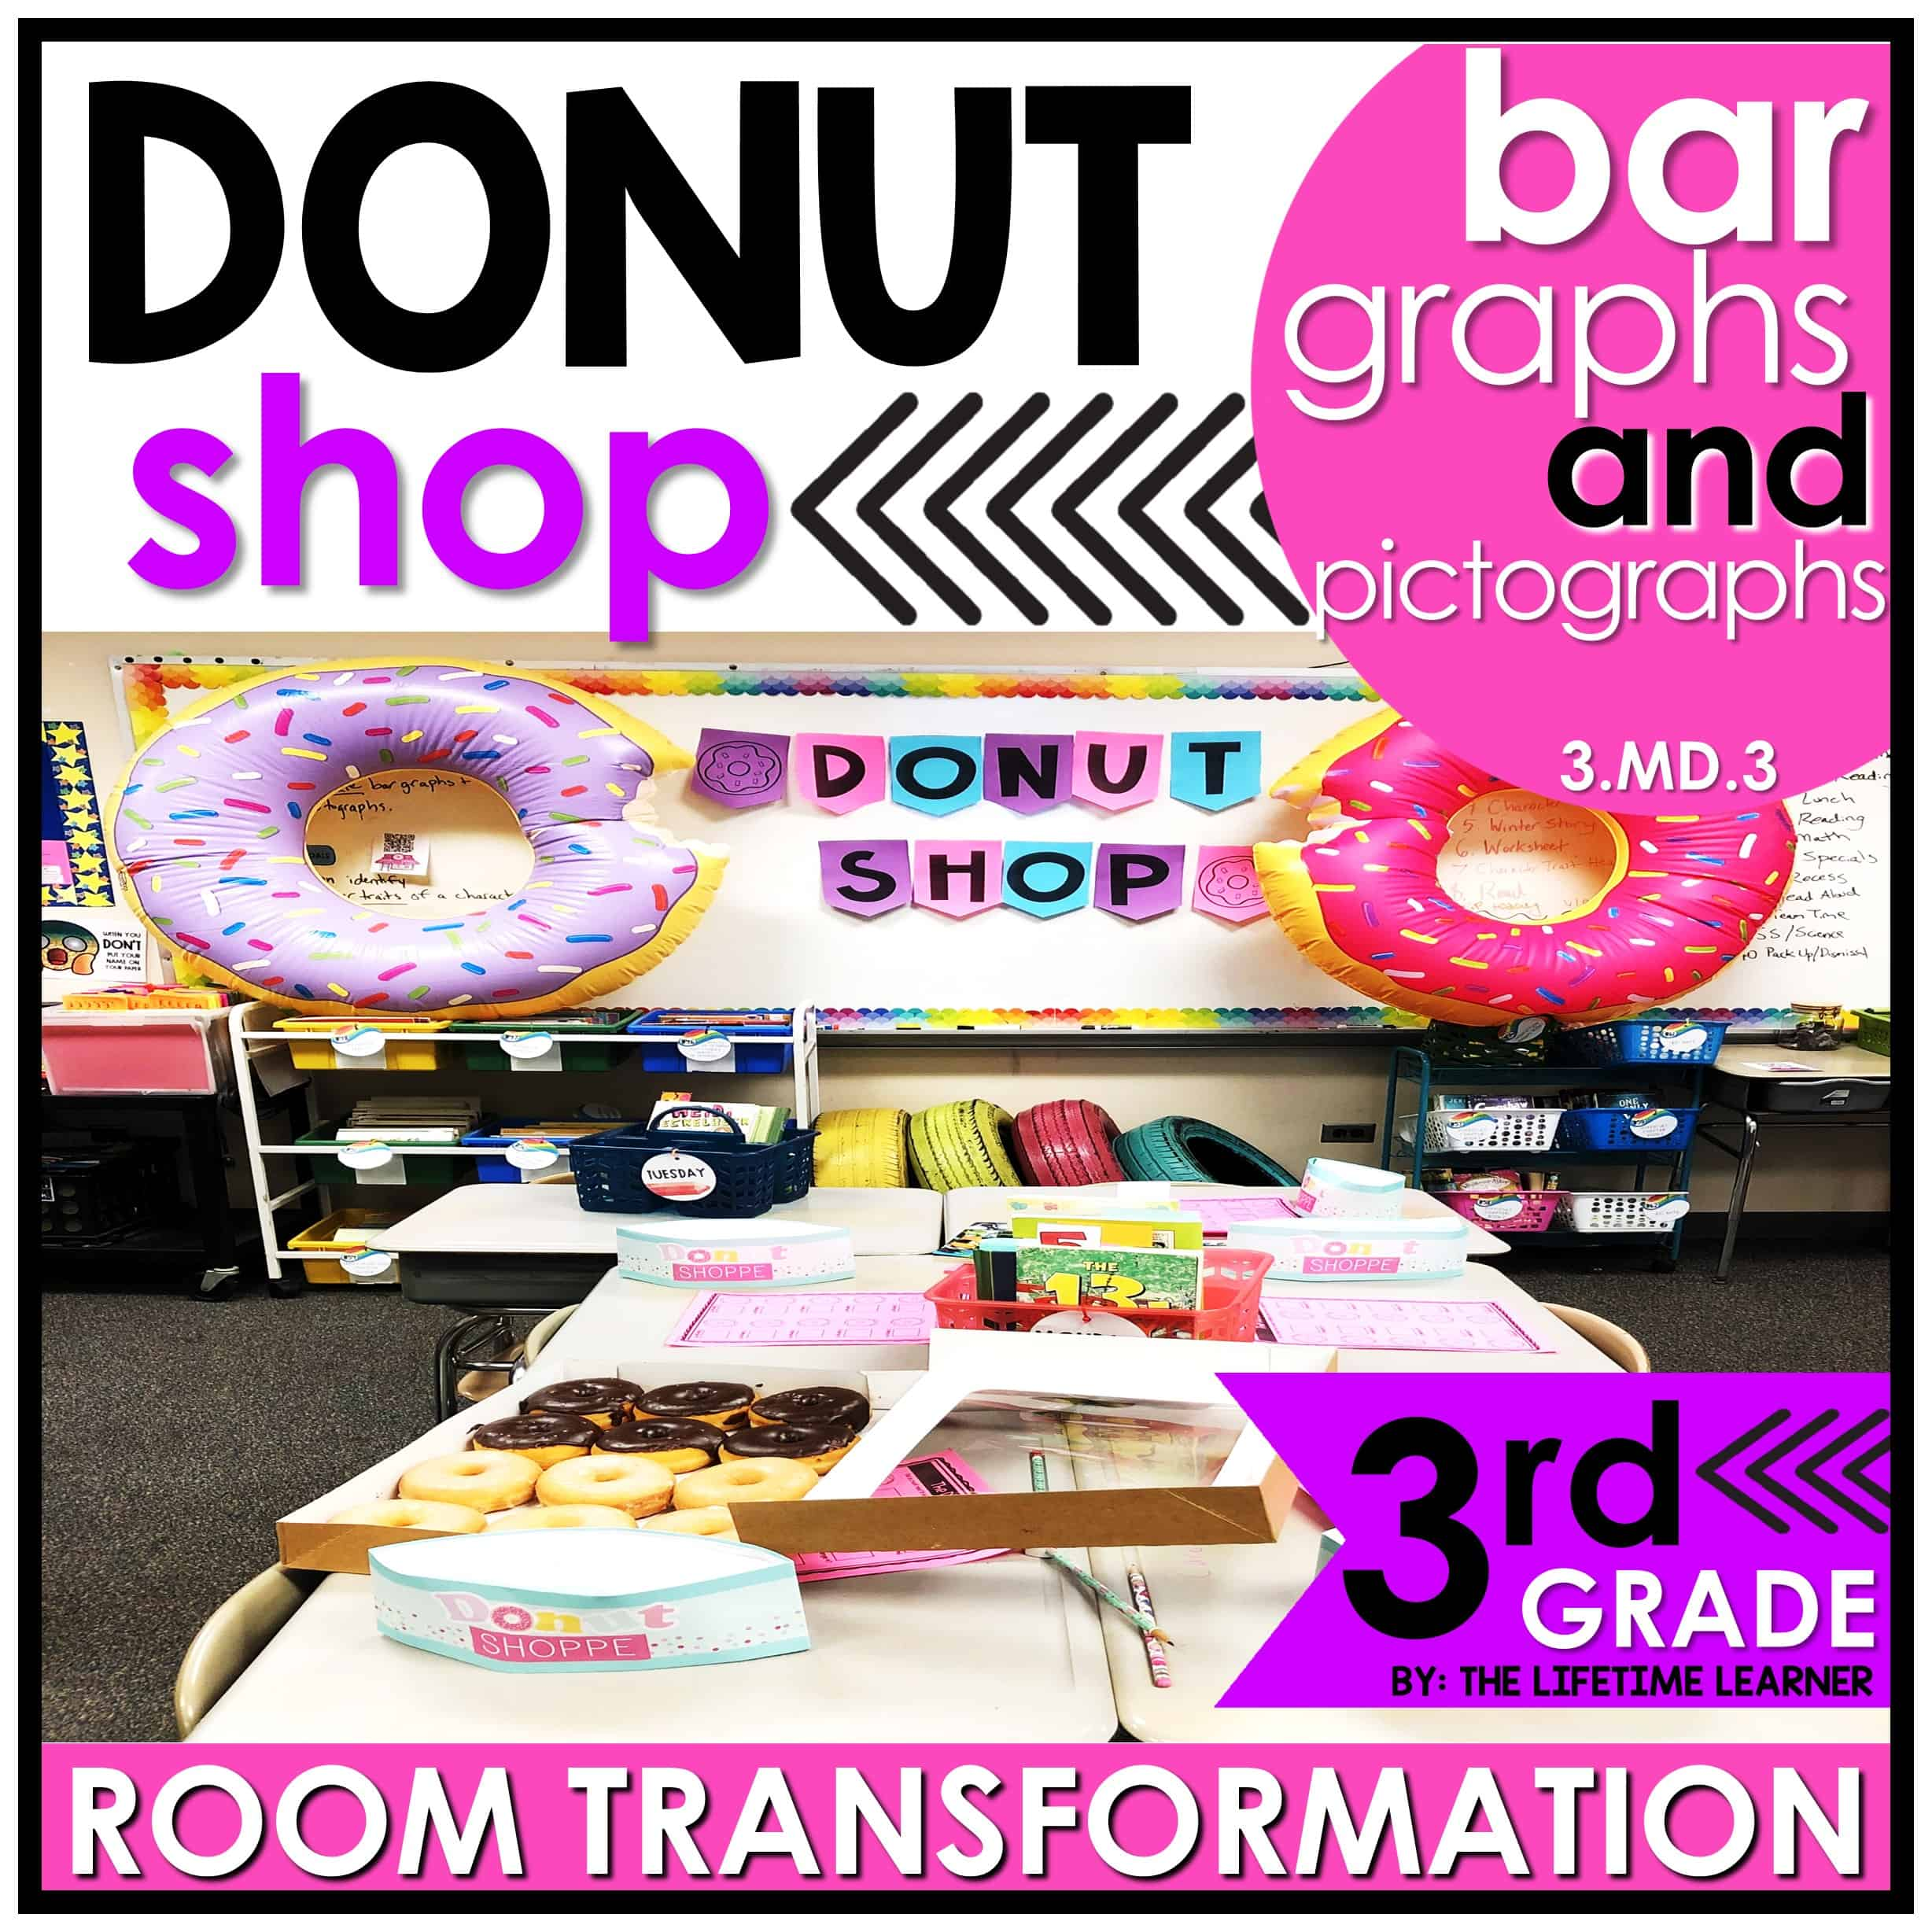 medium resolution of Bar Graphs and Pictographs   3rd Grade Donut Shop Classroom Transformation  - The Lifetime Learner